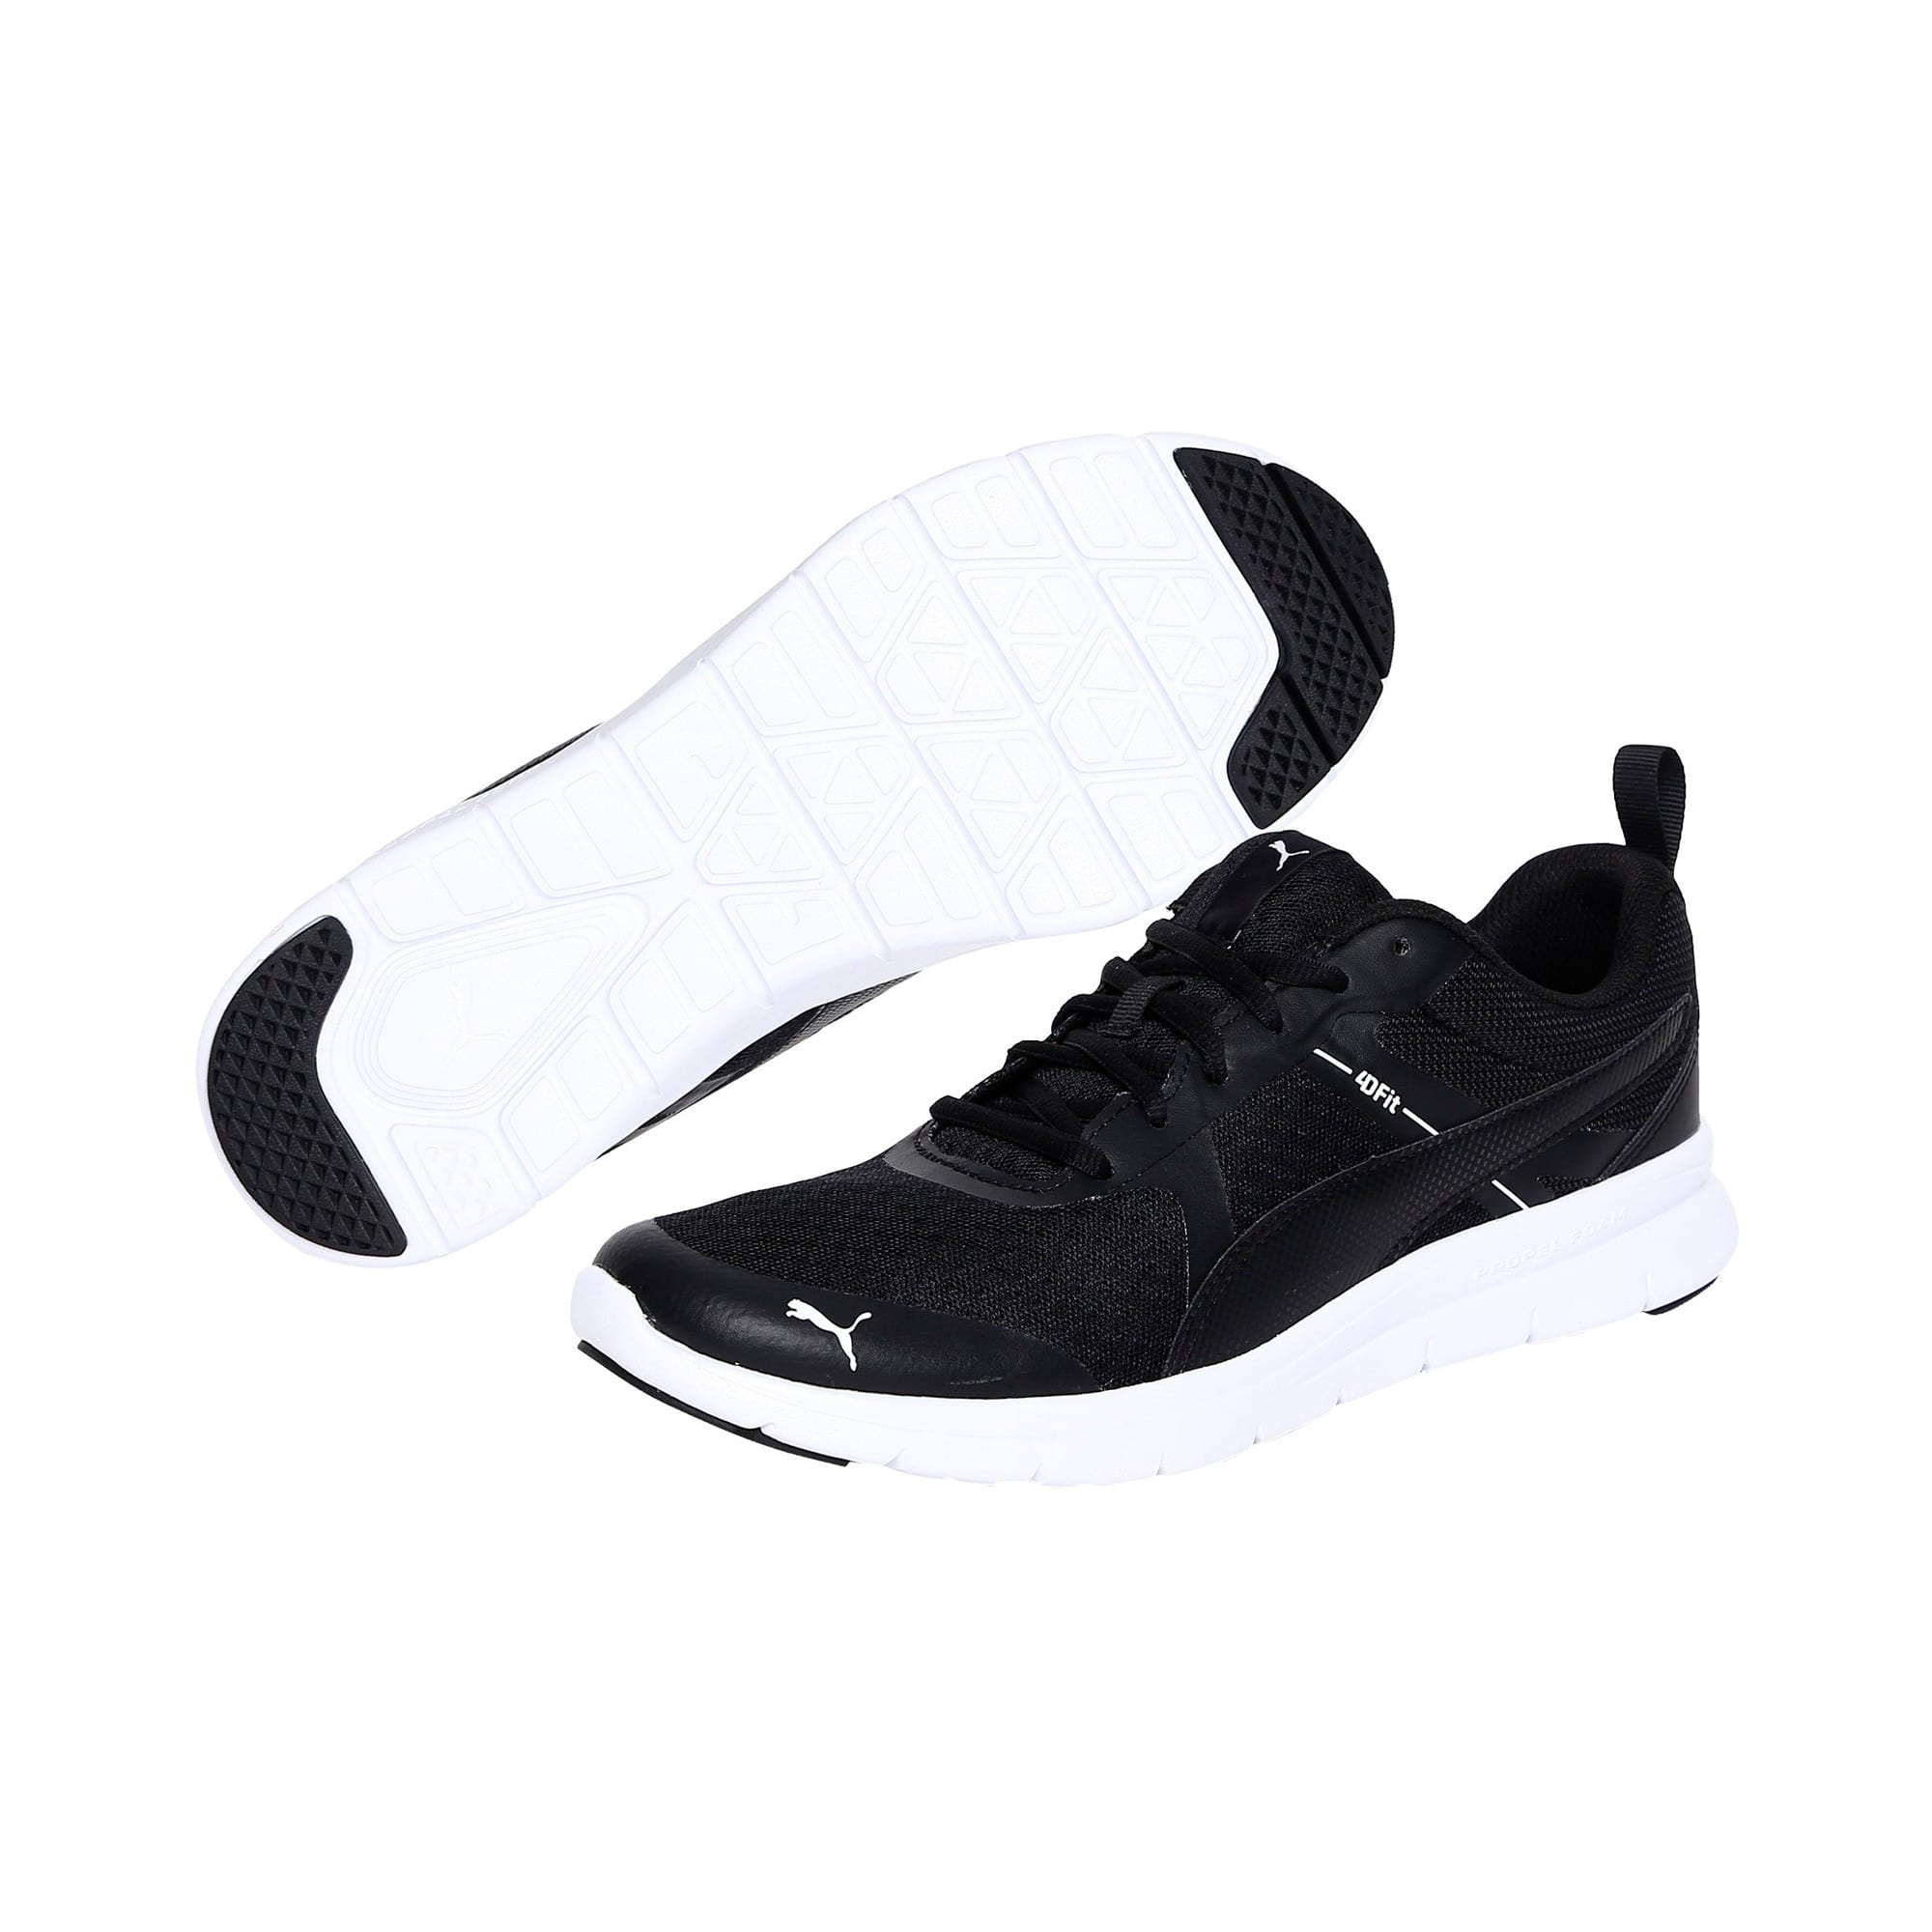 Thumbnail 2 of Flex Essential Trainers, Puma Black-Puma Black, medium-IND